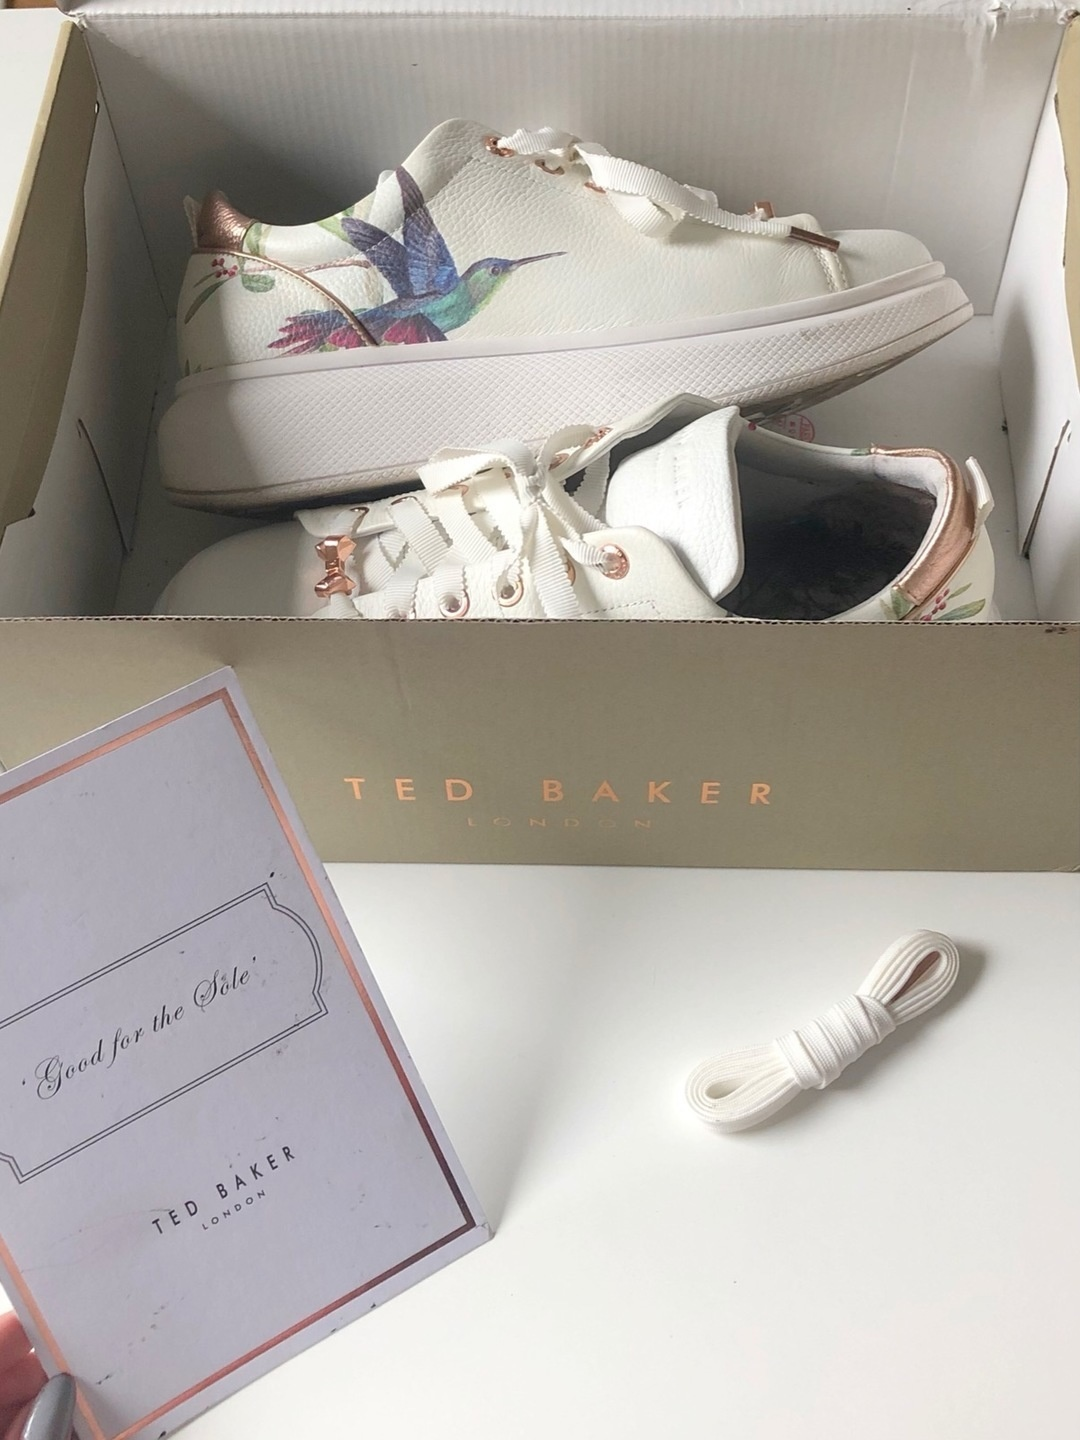 Women's sneakers - TED BAKER photo 1